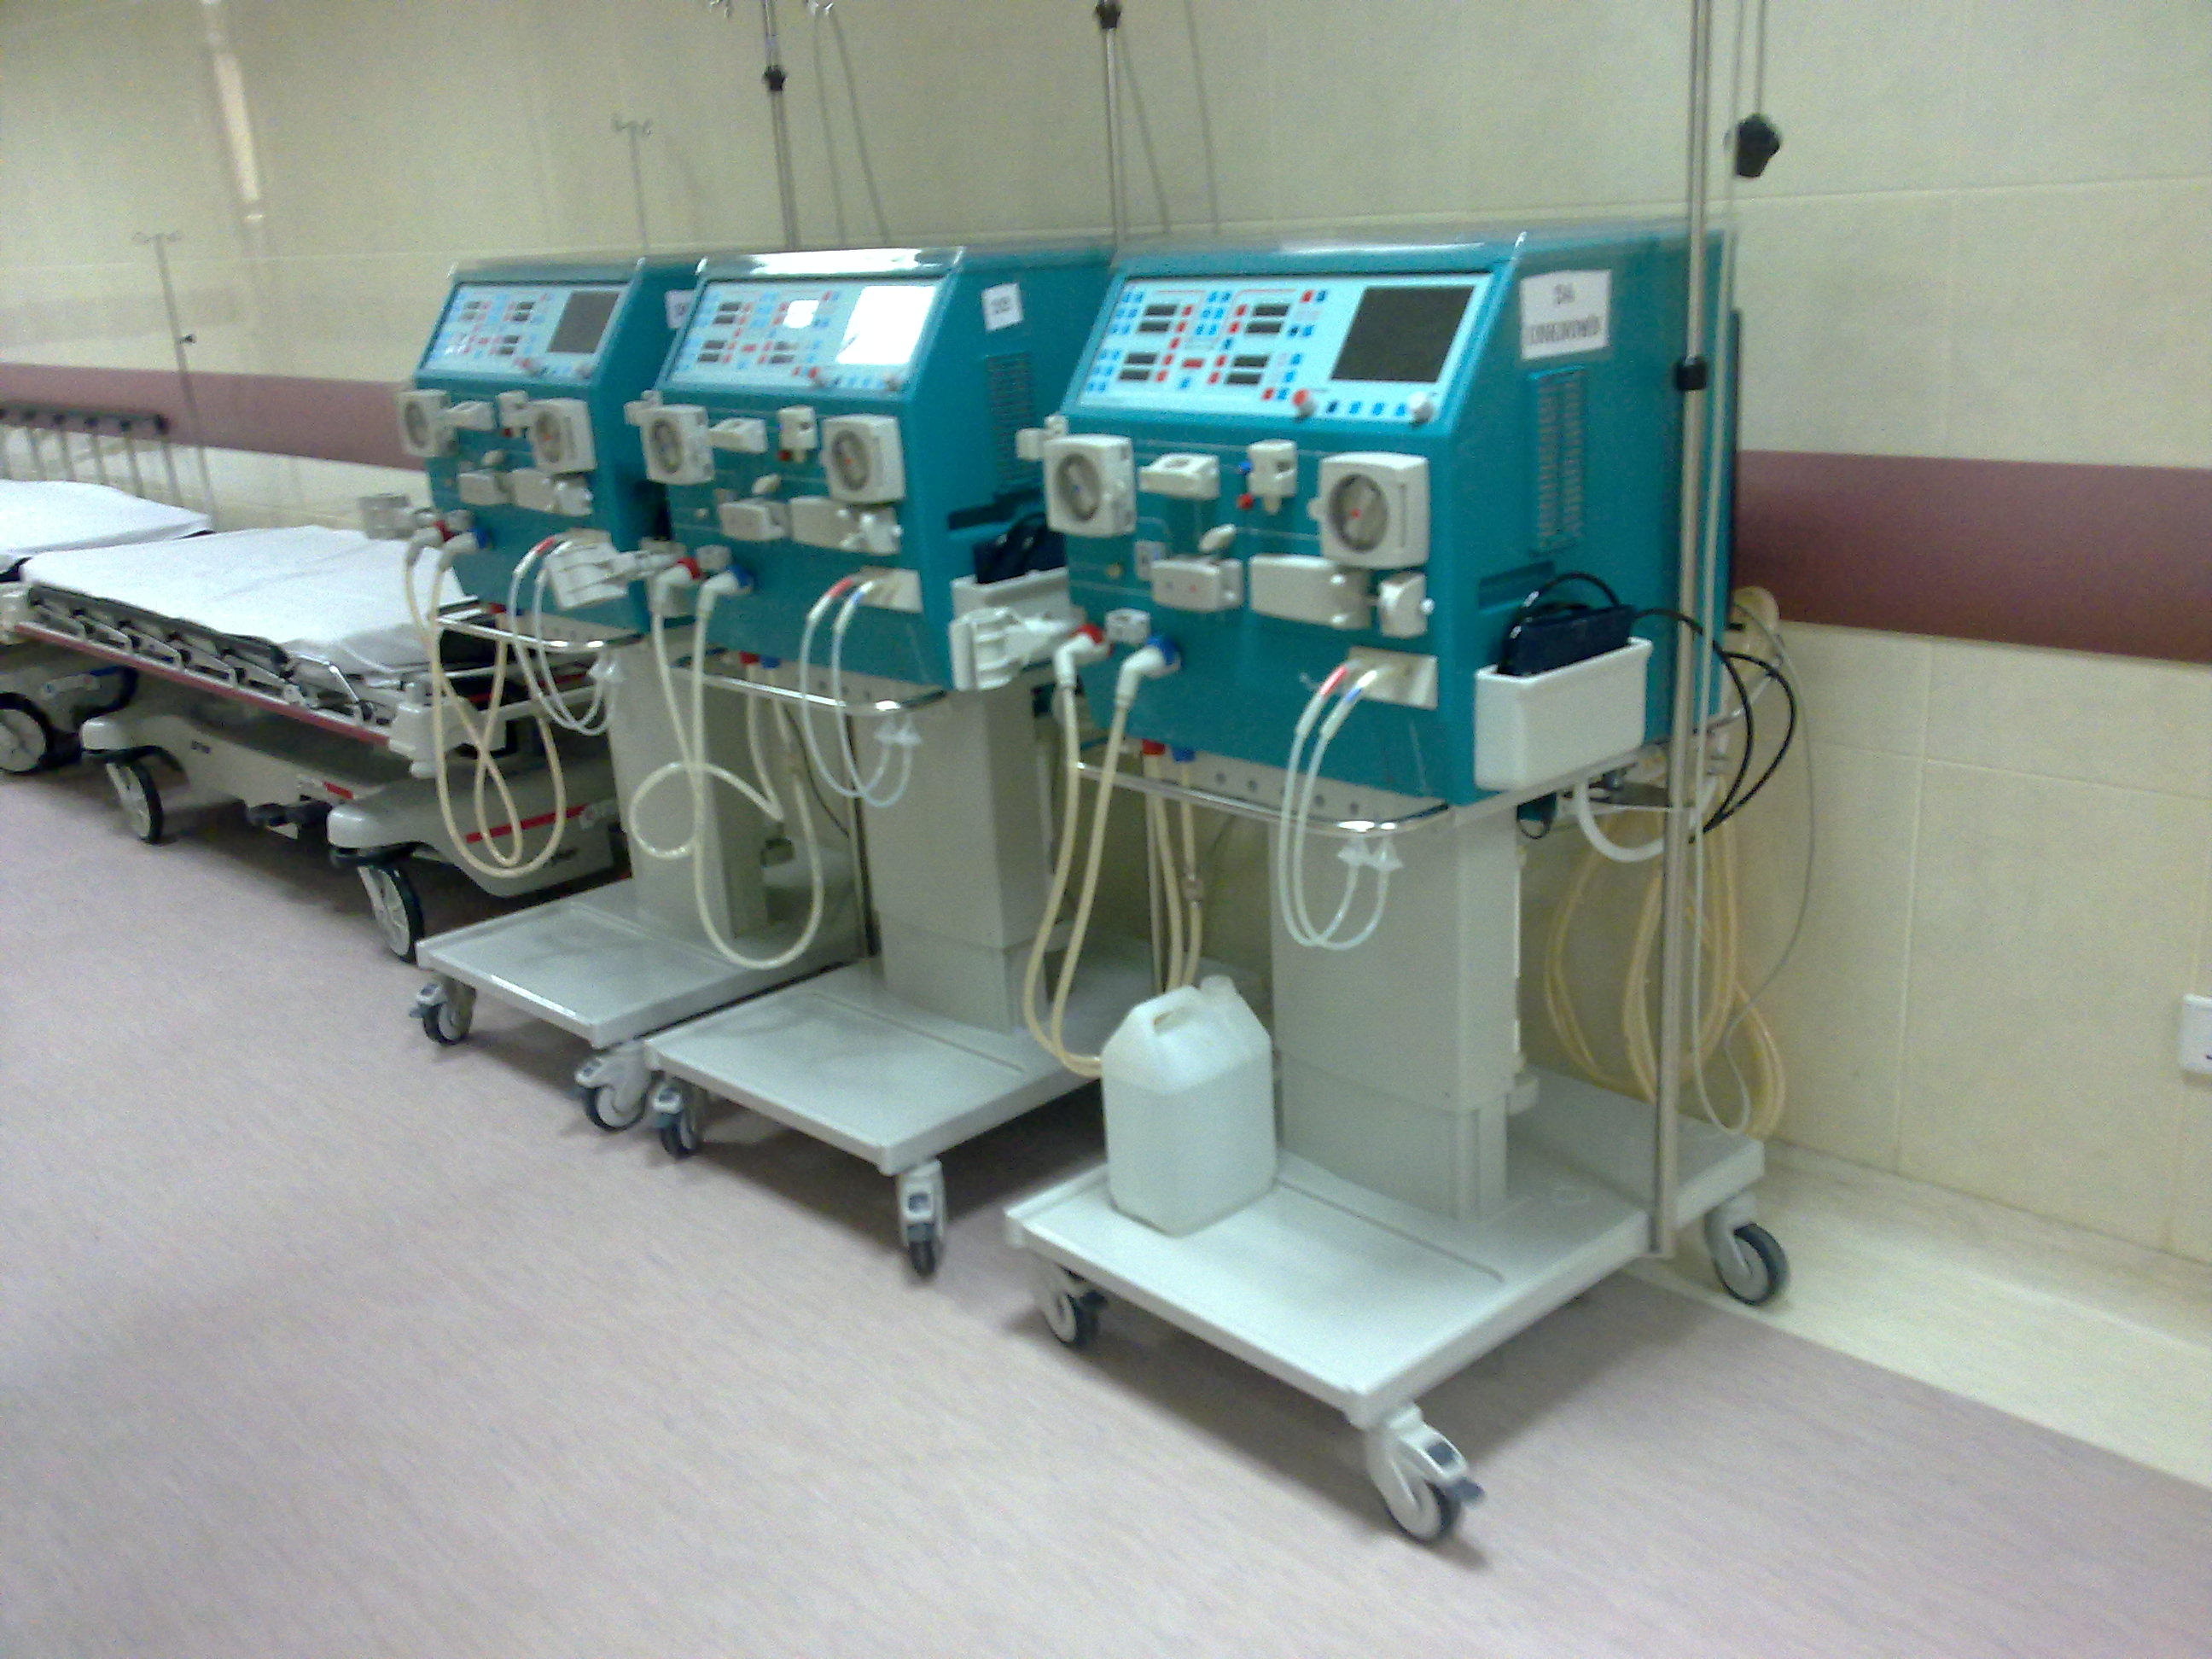 Dialysis machines by irvin calicut.jpg